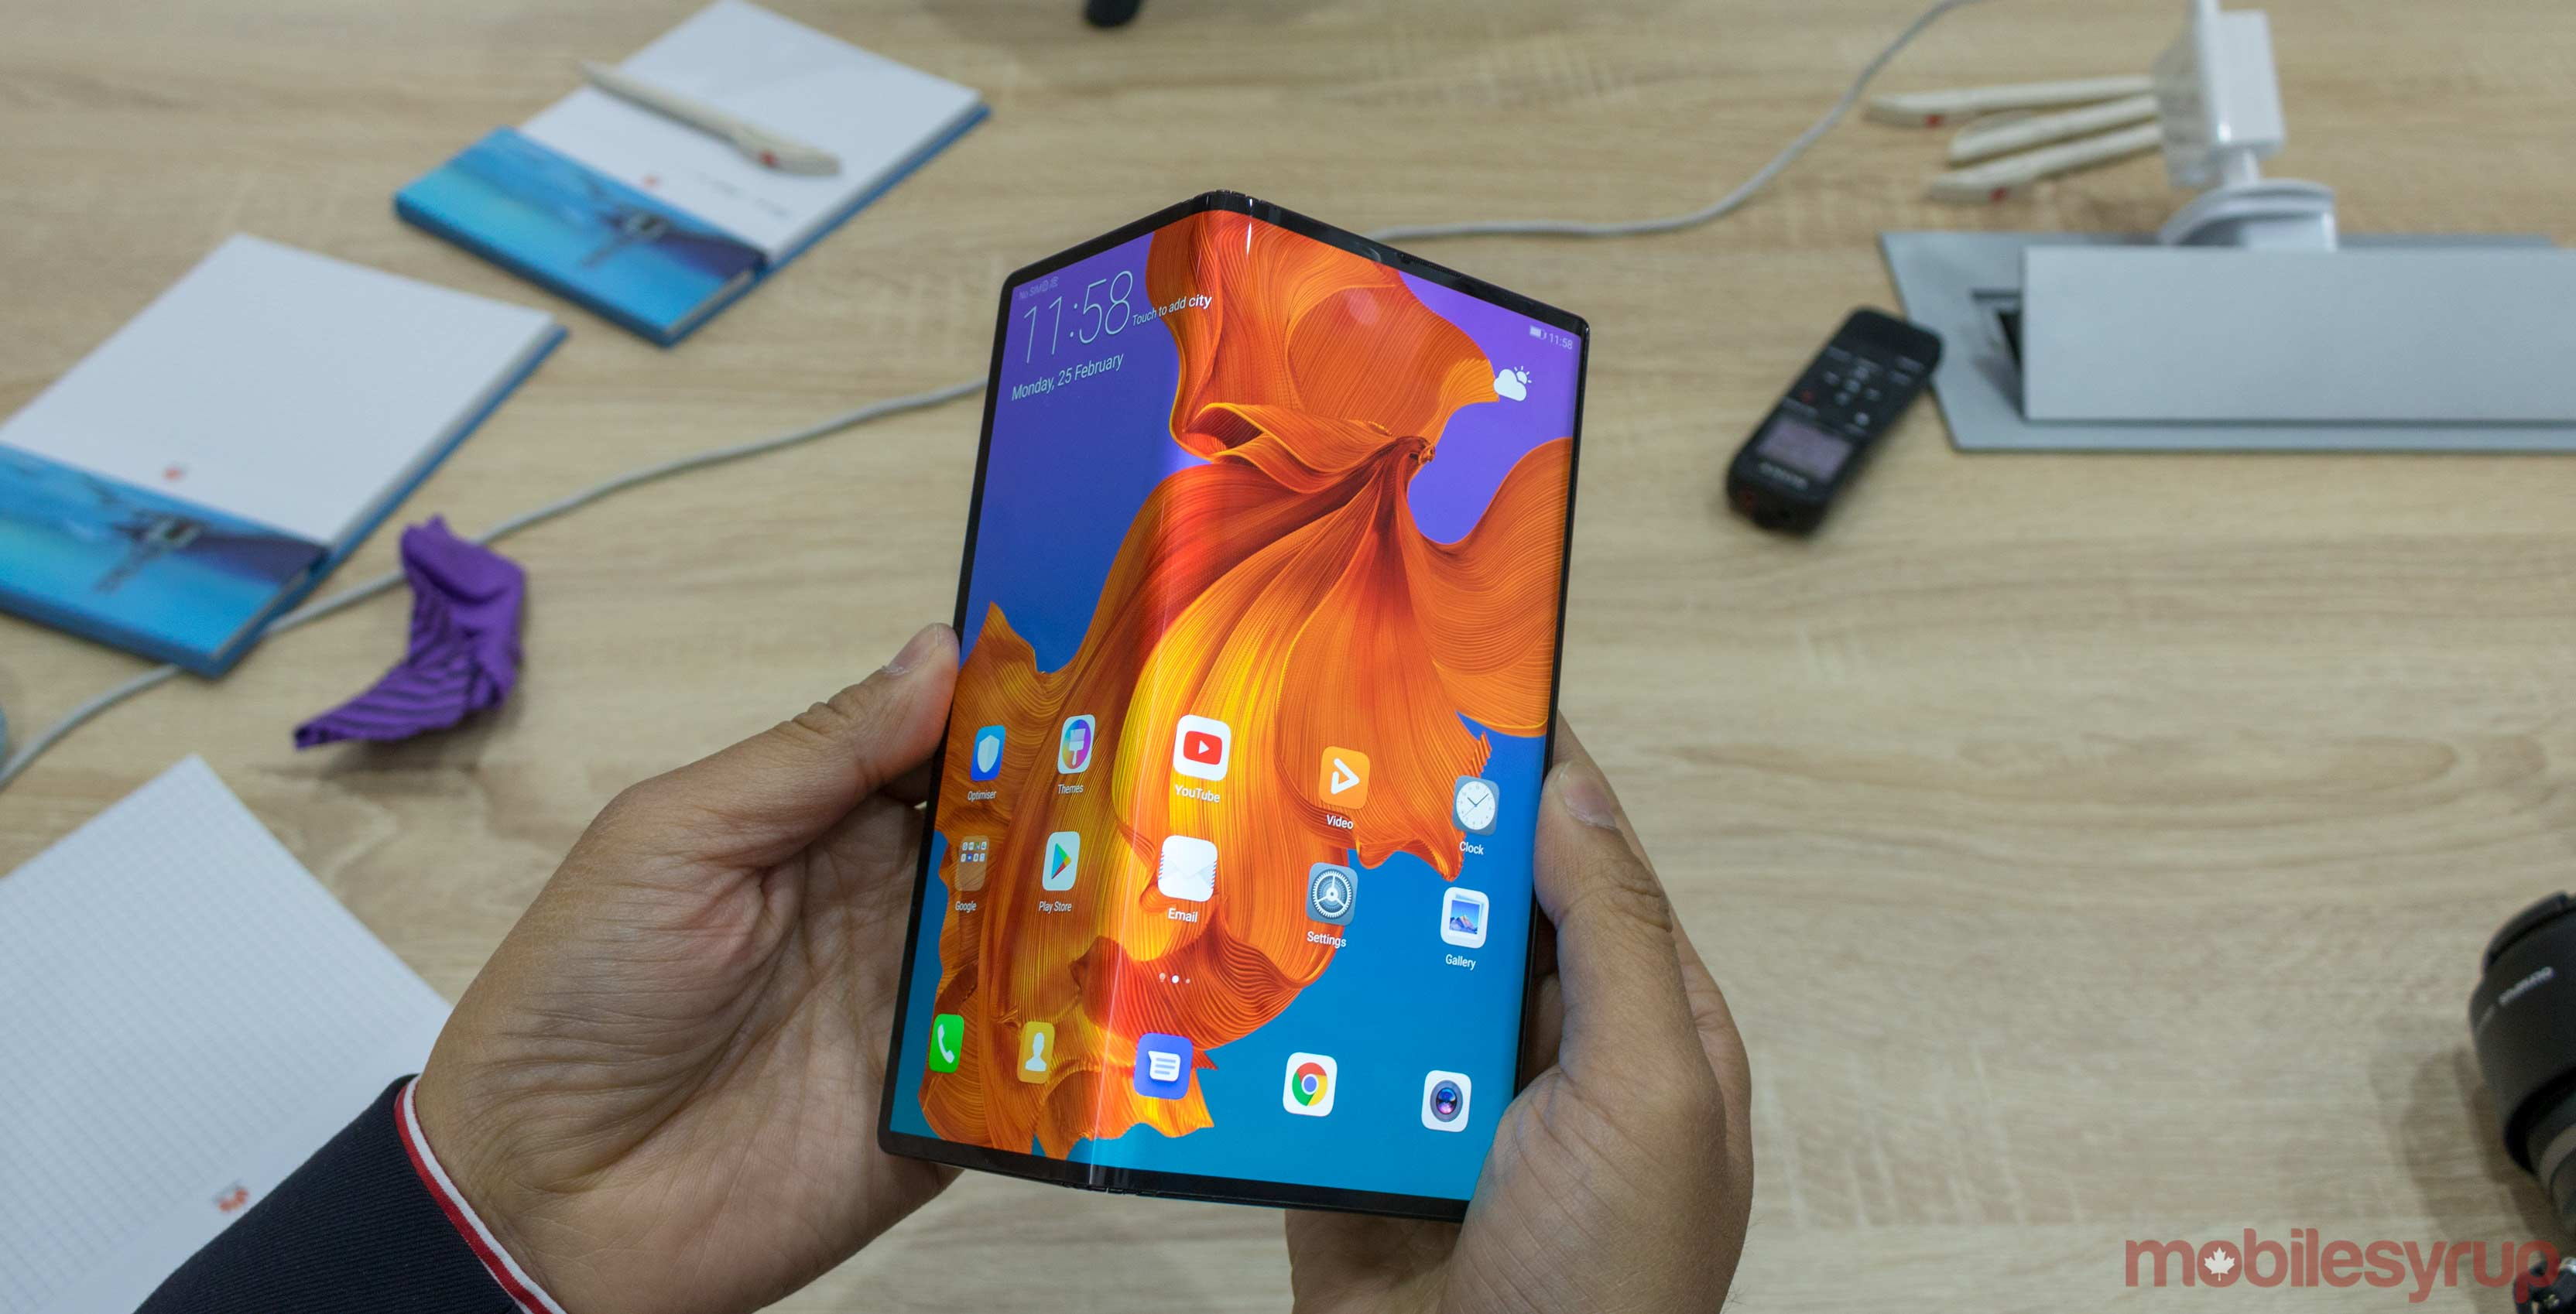 Huawei Mate X foldable smartphone's launch is near